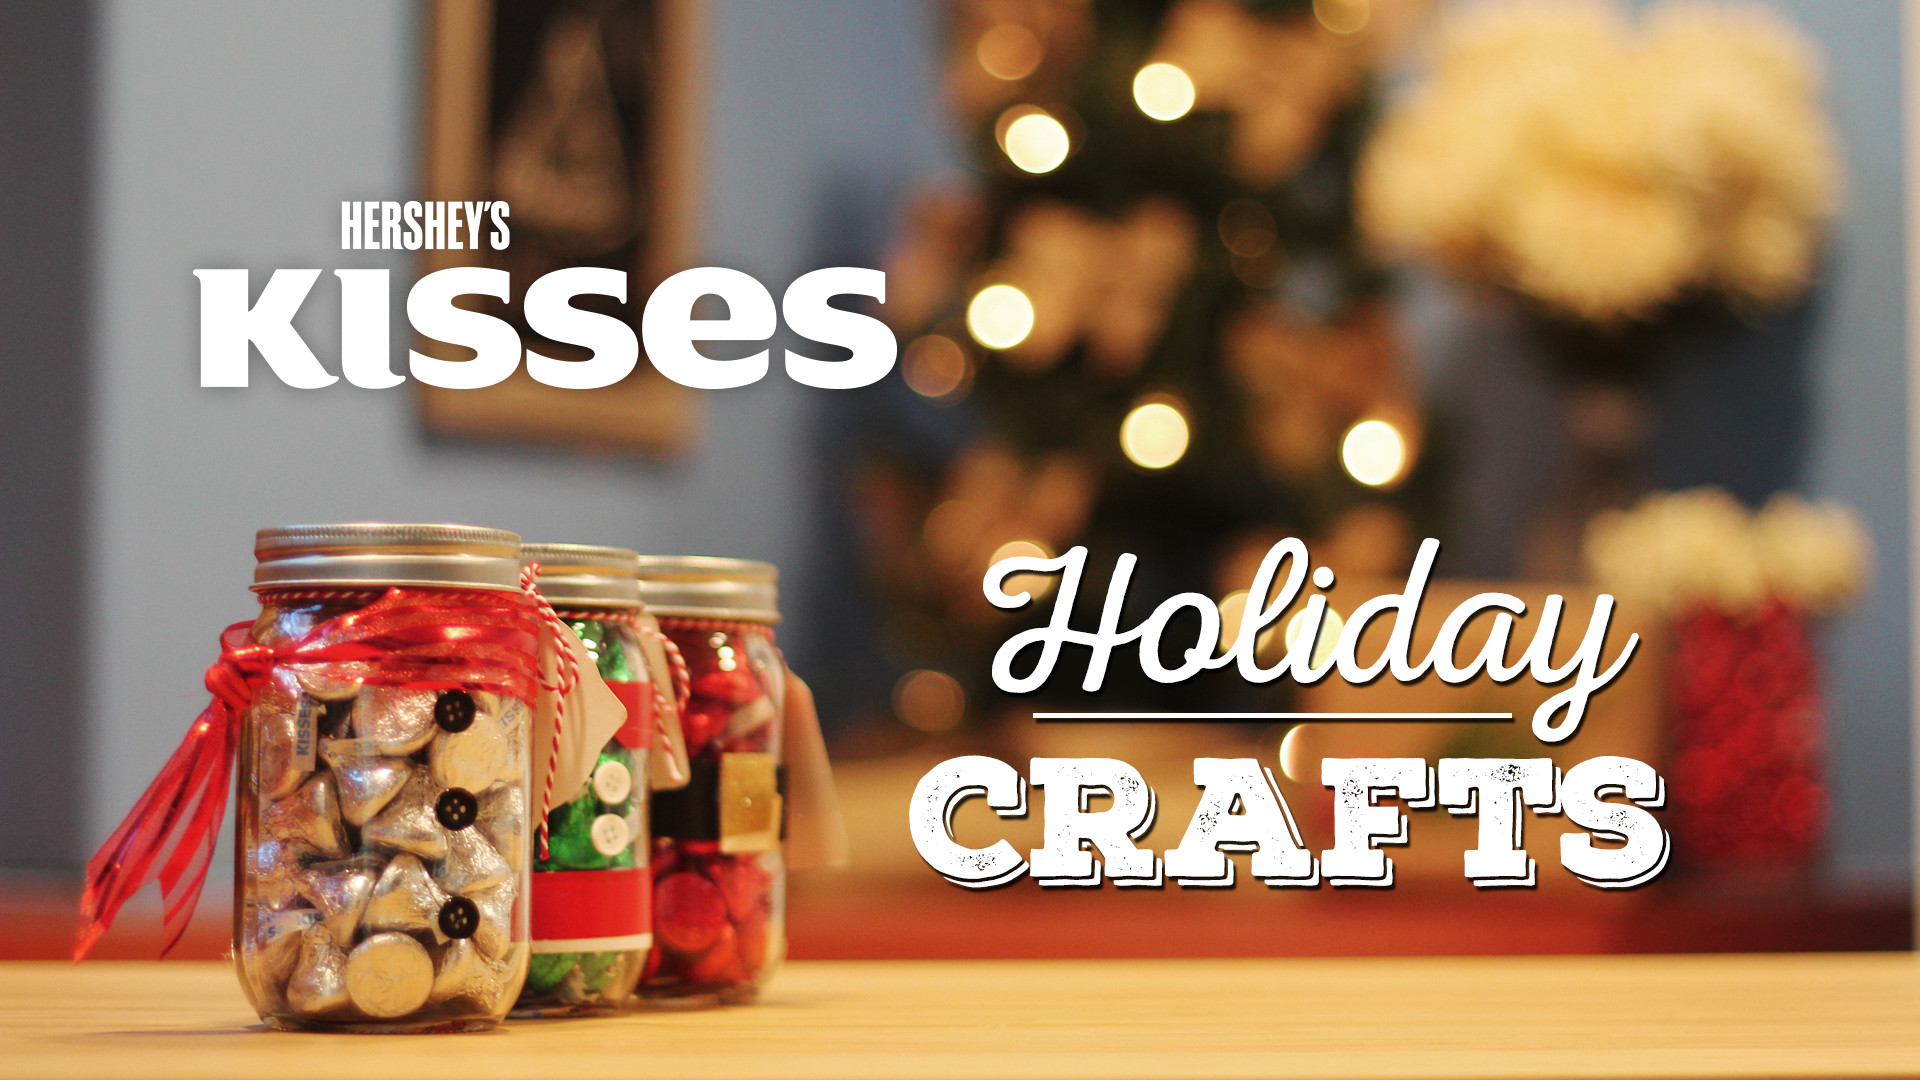 Best ideas about Hershey Kisses Gift Ideas . Save or Pin Hershey s Kisses Treats to the Rescue With These Clever Now.